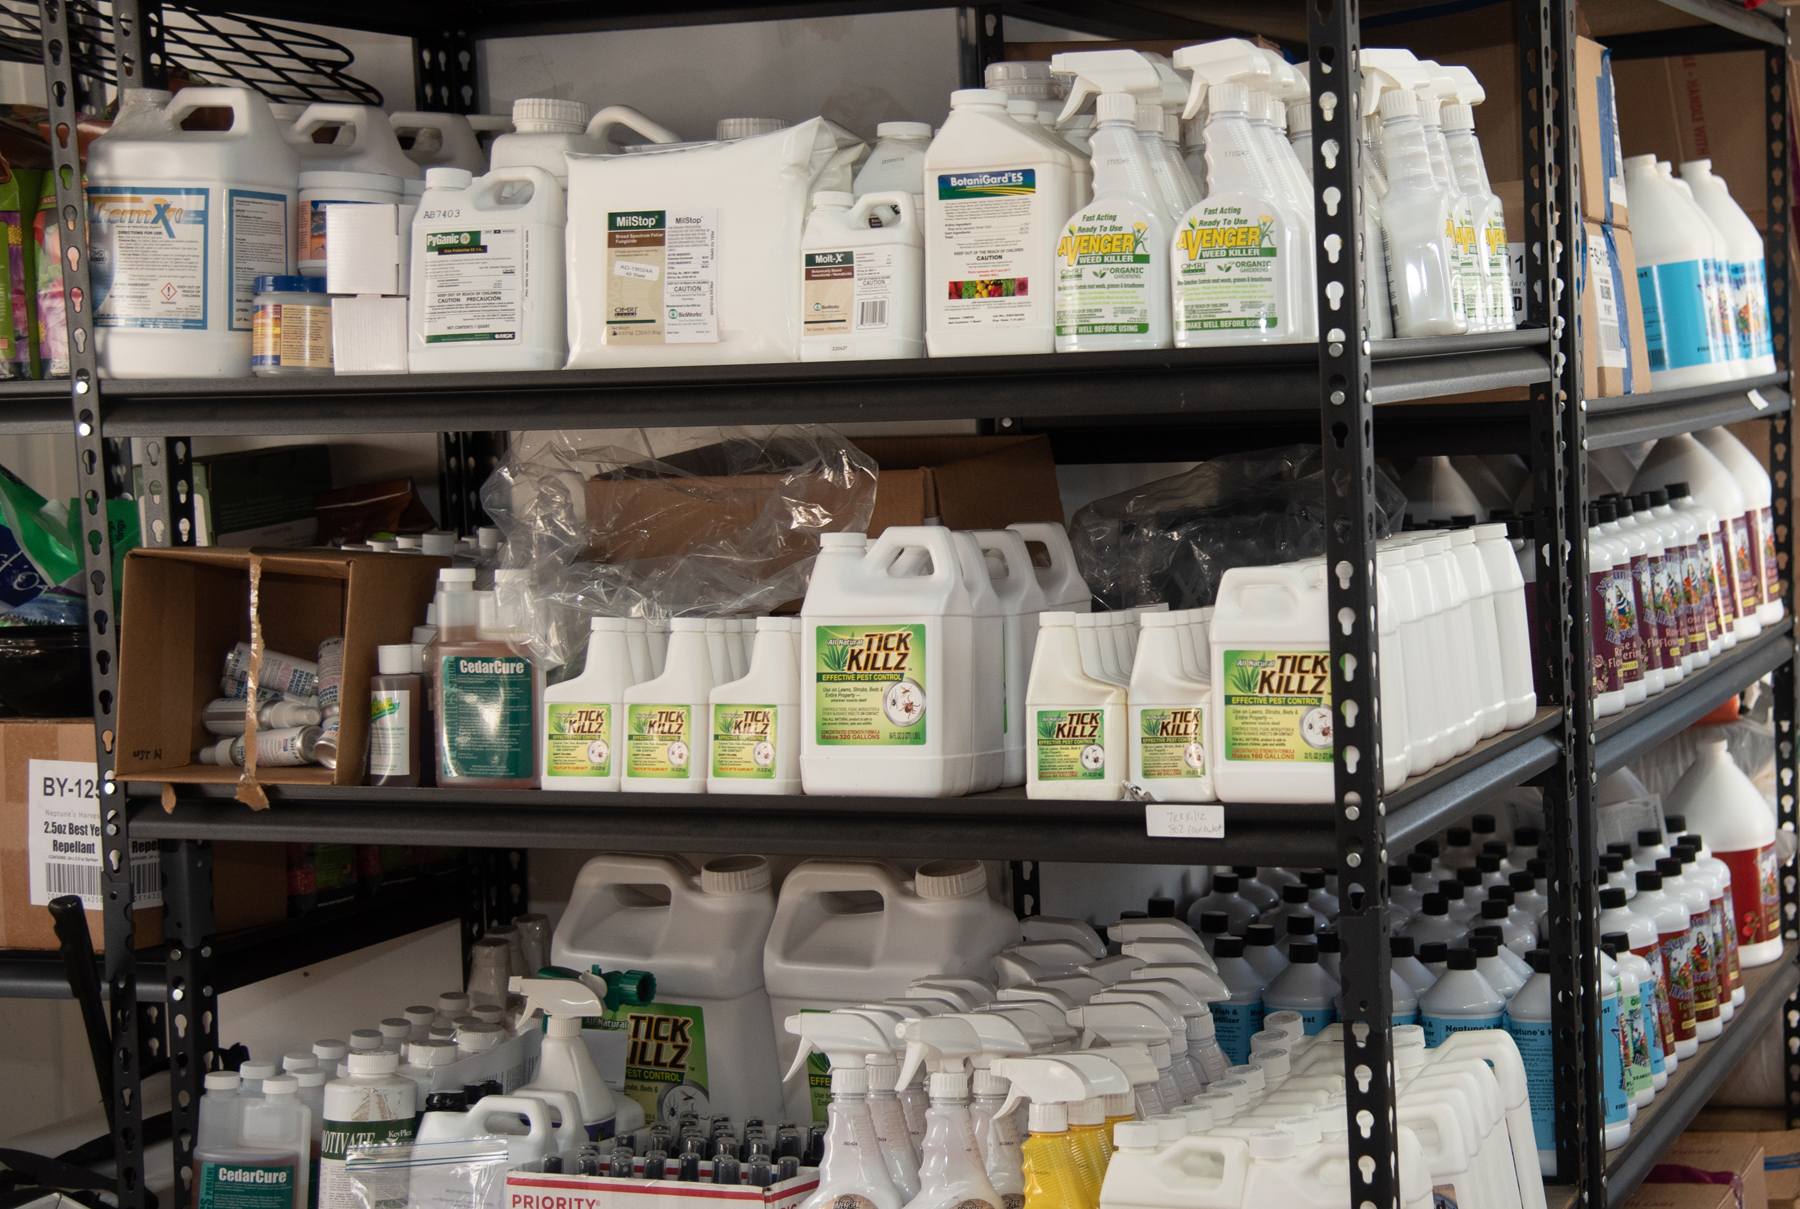 Green Earth Ag & Turf Products on SHelfg